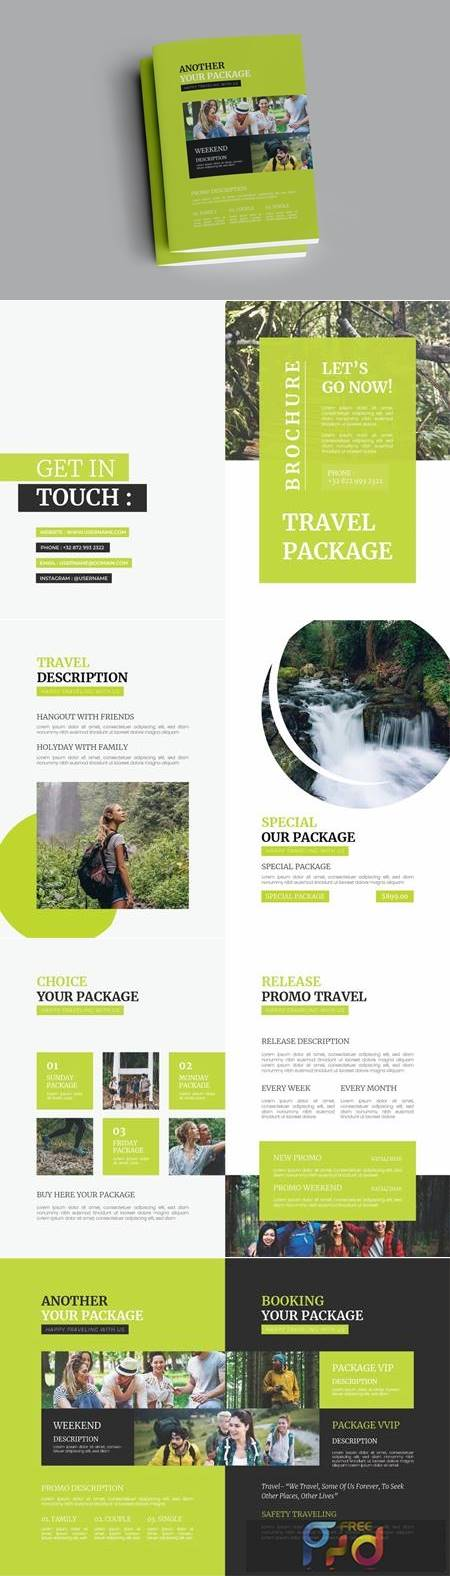 Travel Package Brochure VURDF93 1